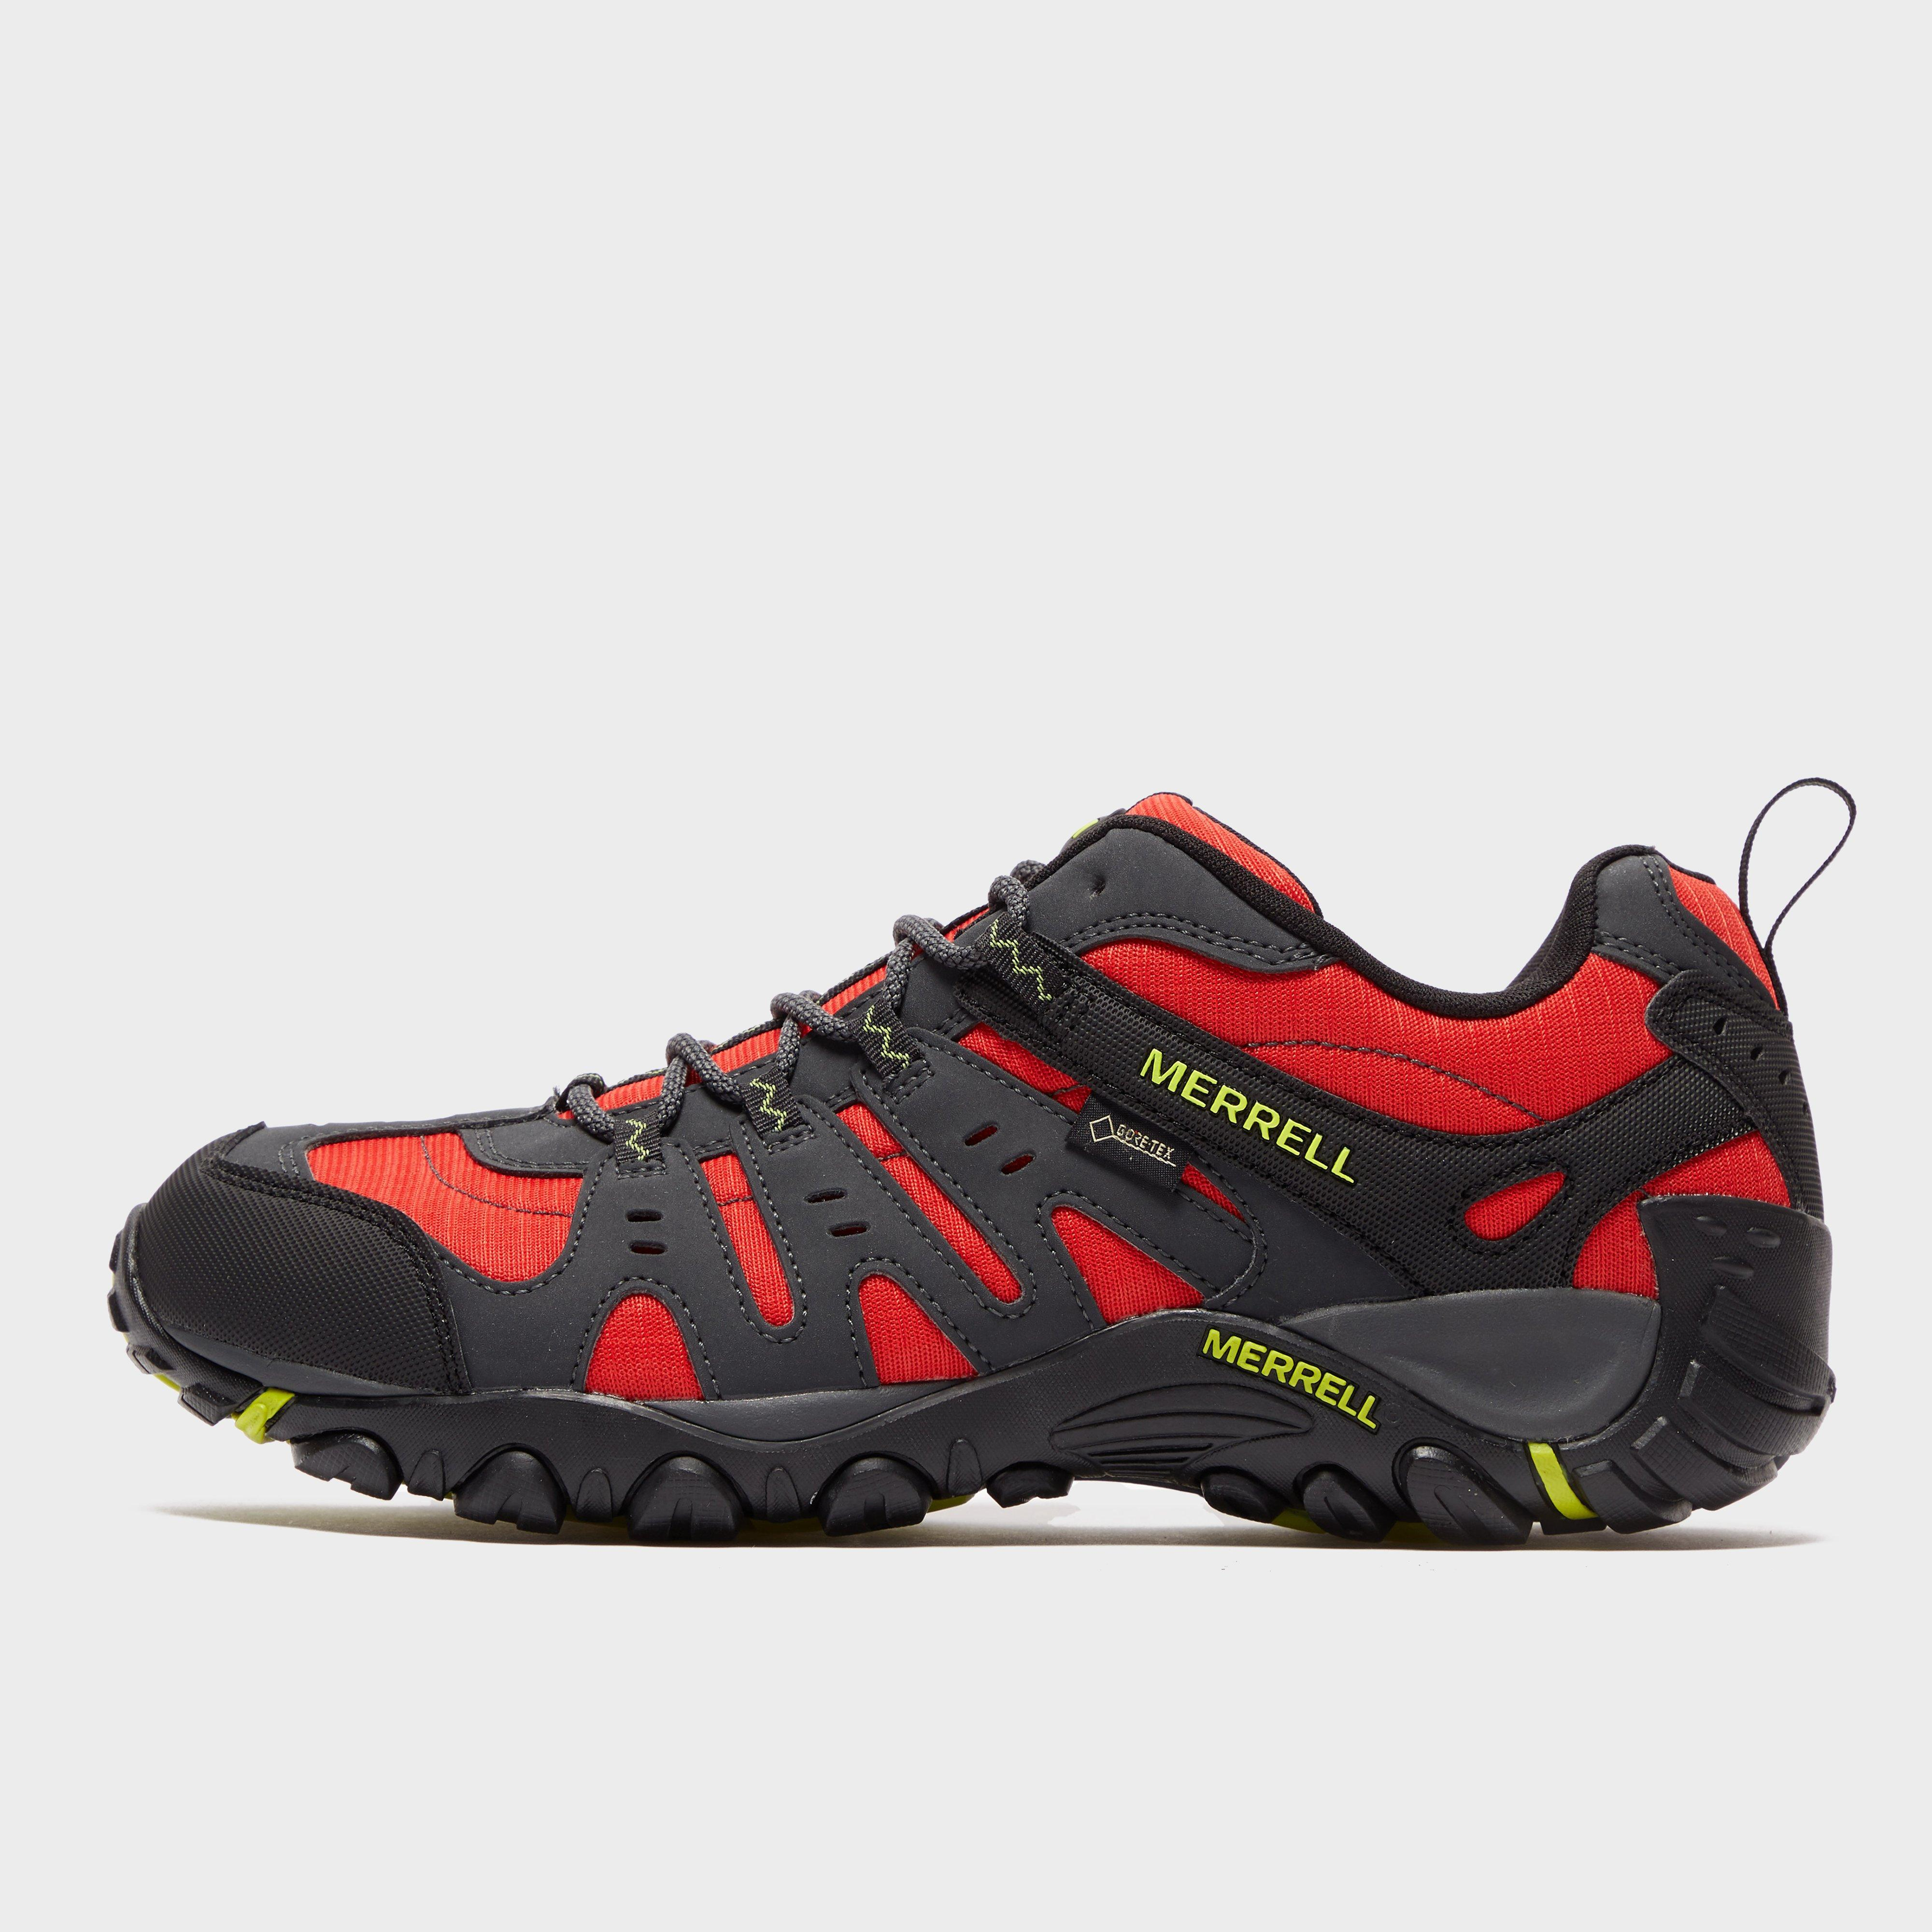 Merrell Merrell Mens Accentor Sport GORE-TEX Trail Shoes - Red, Red